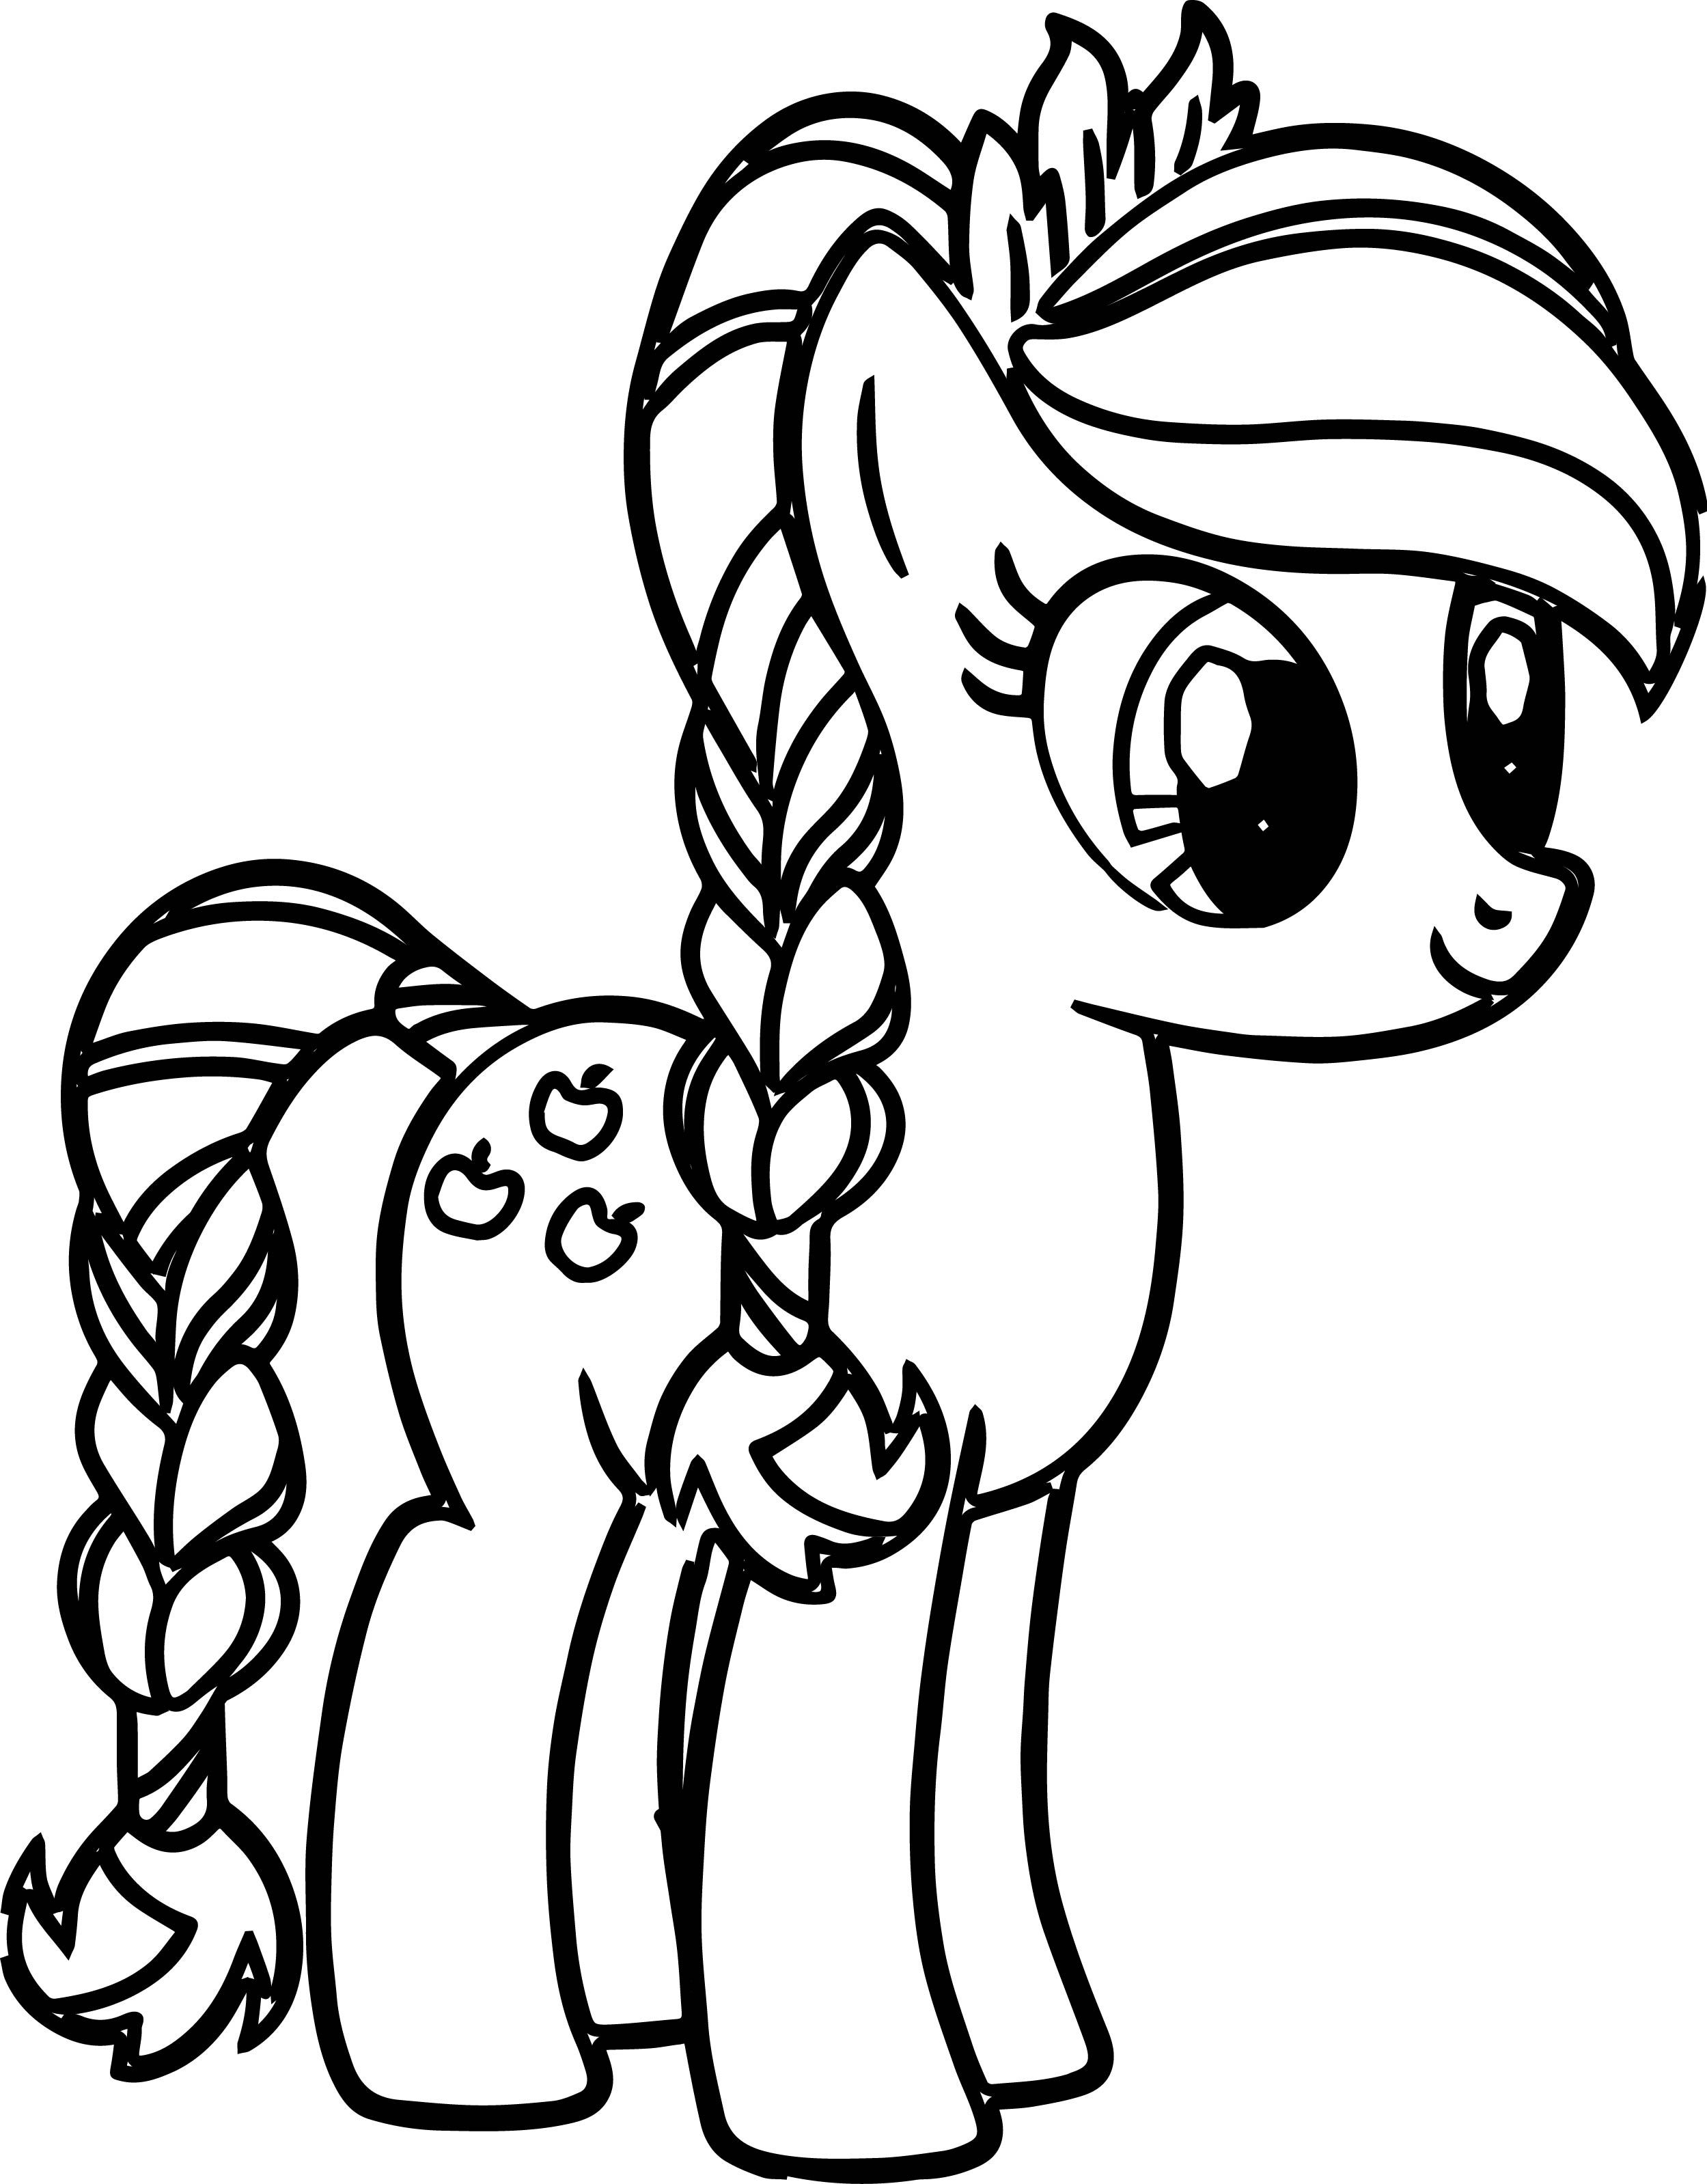 Pony Cartoon My Little Pony Coloring Pages | Pony and Draw